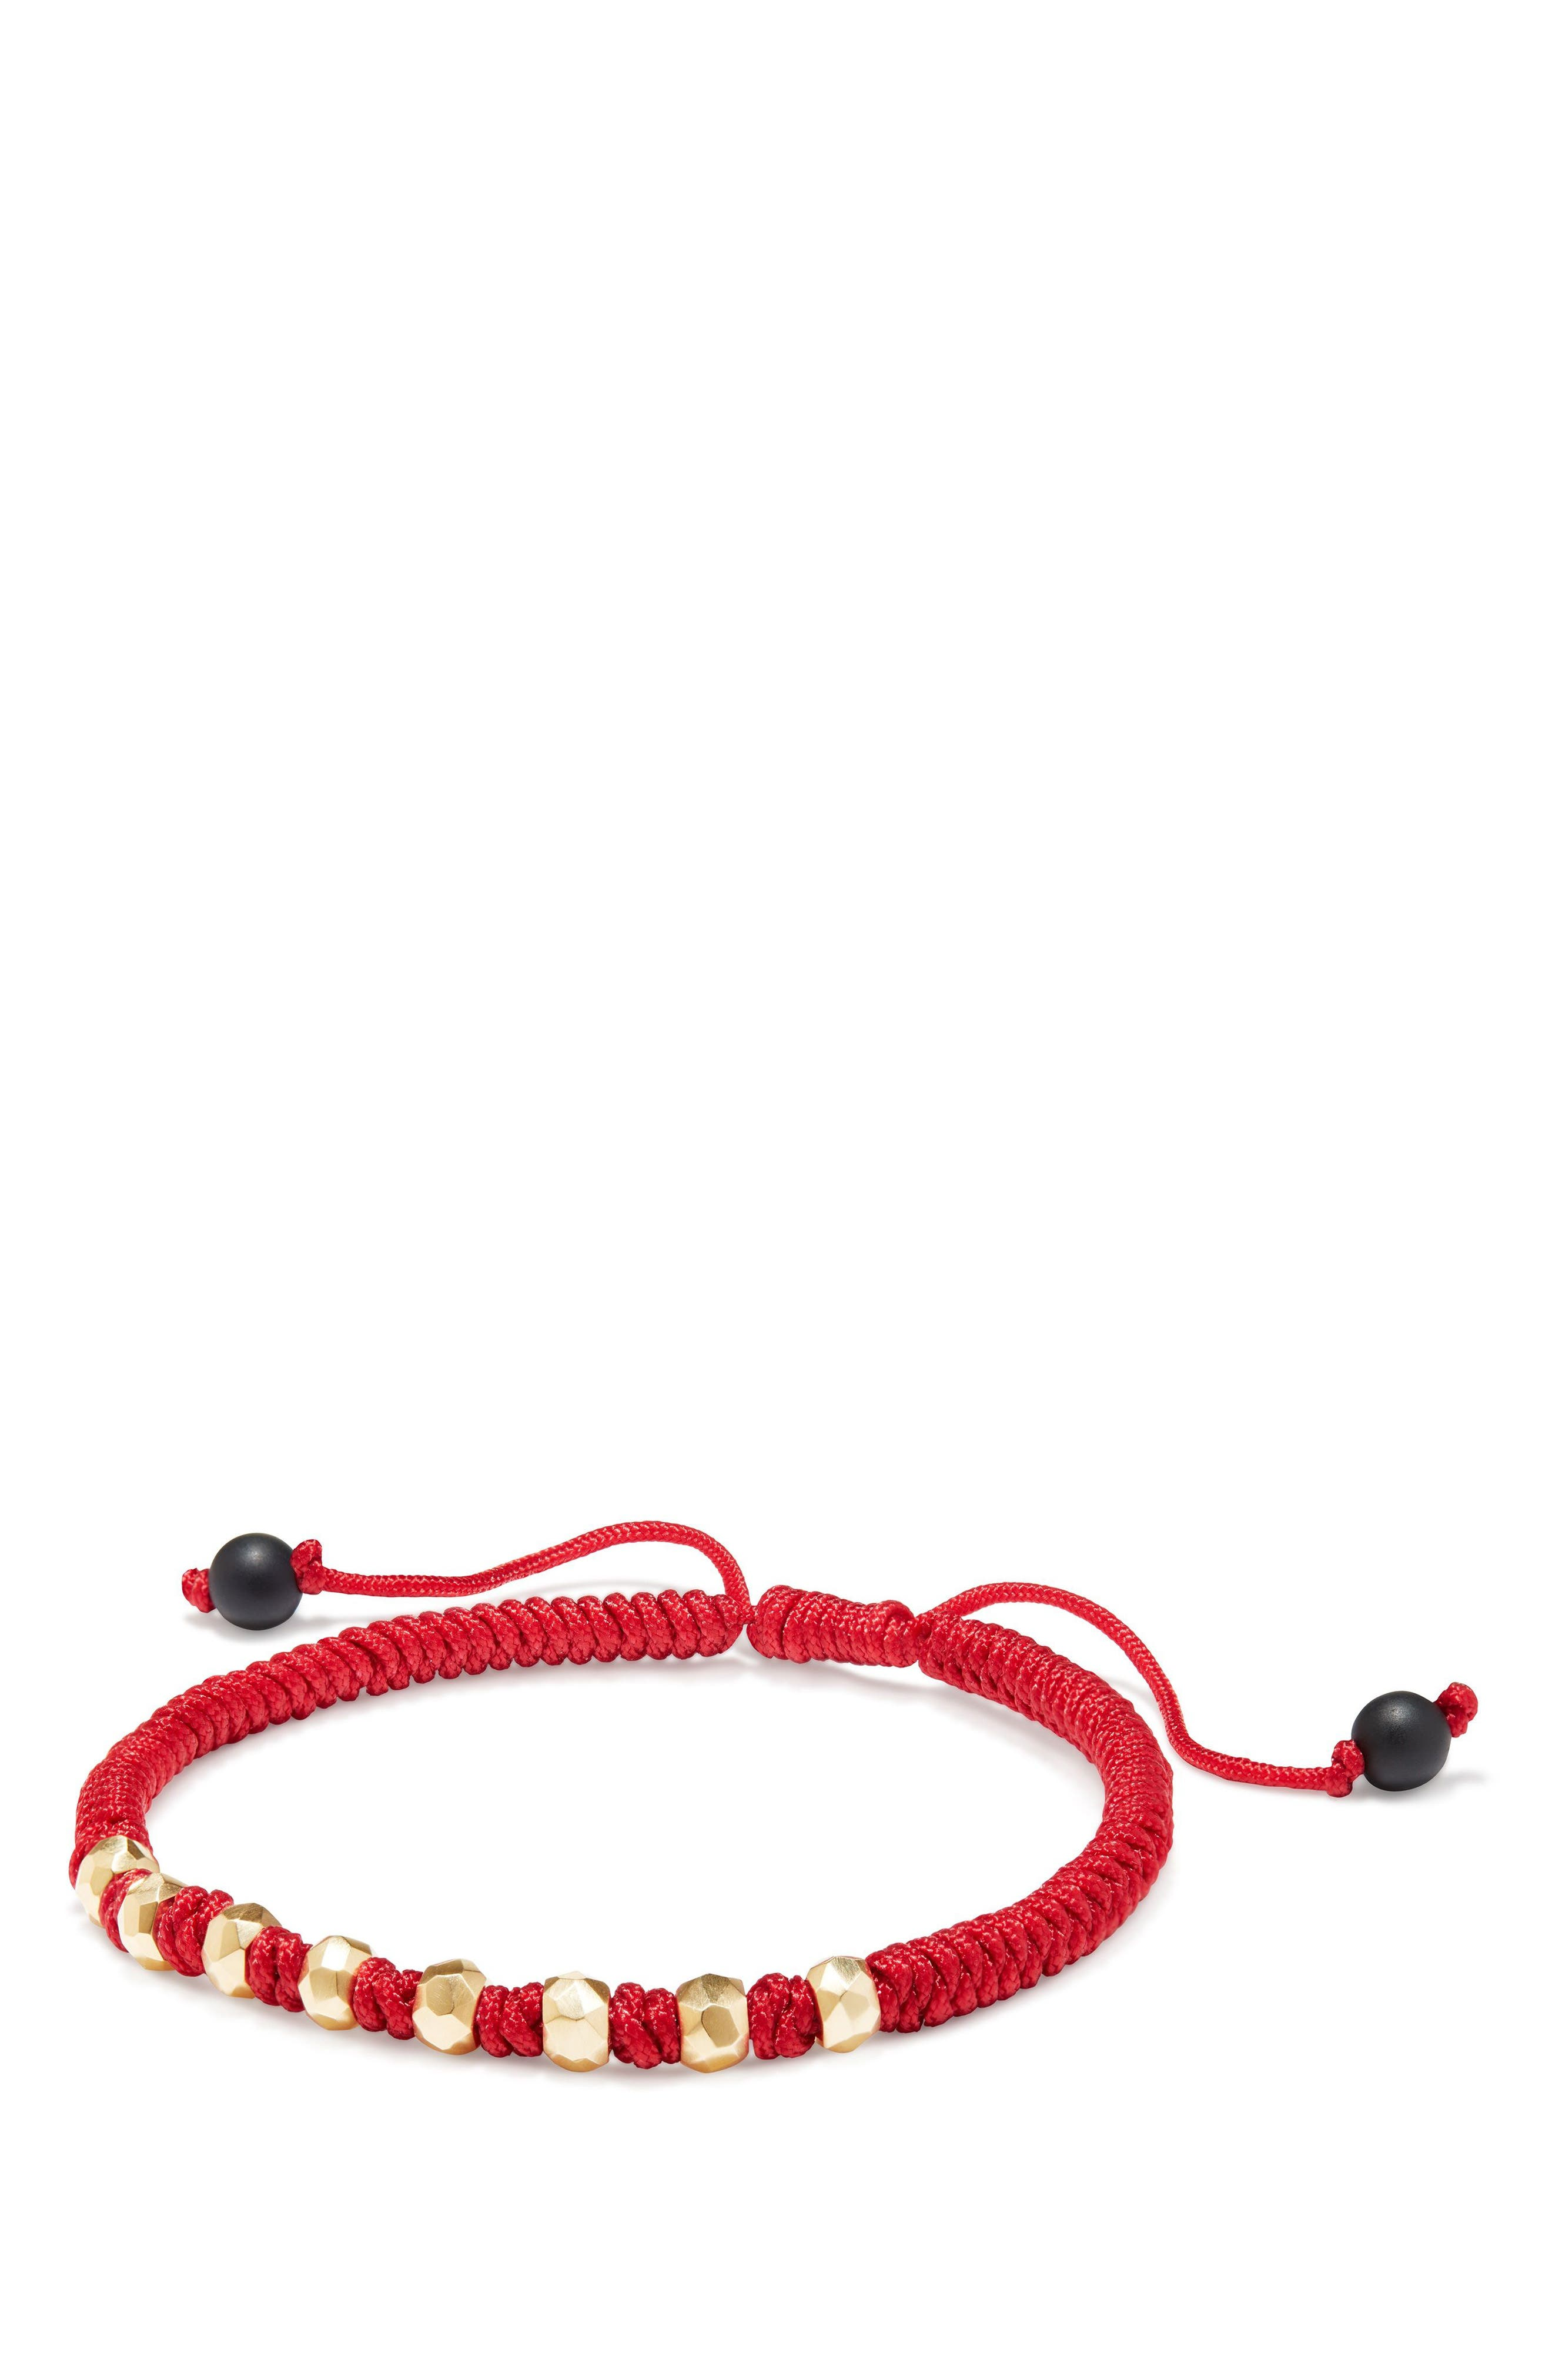 DY Fortune Woven Bracelet with Black Onyx in 18K Gold,                             Main thumbnail 1, color,                             Red